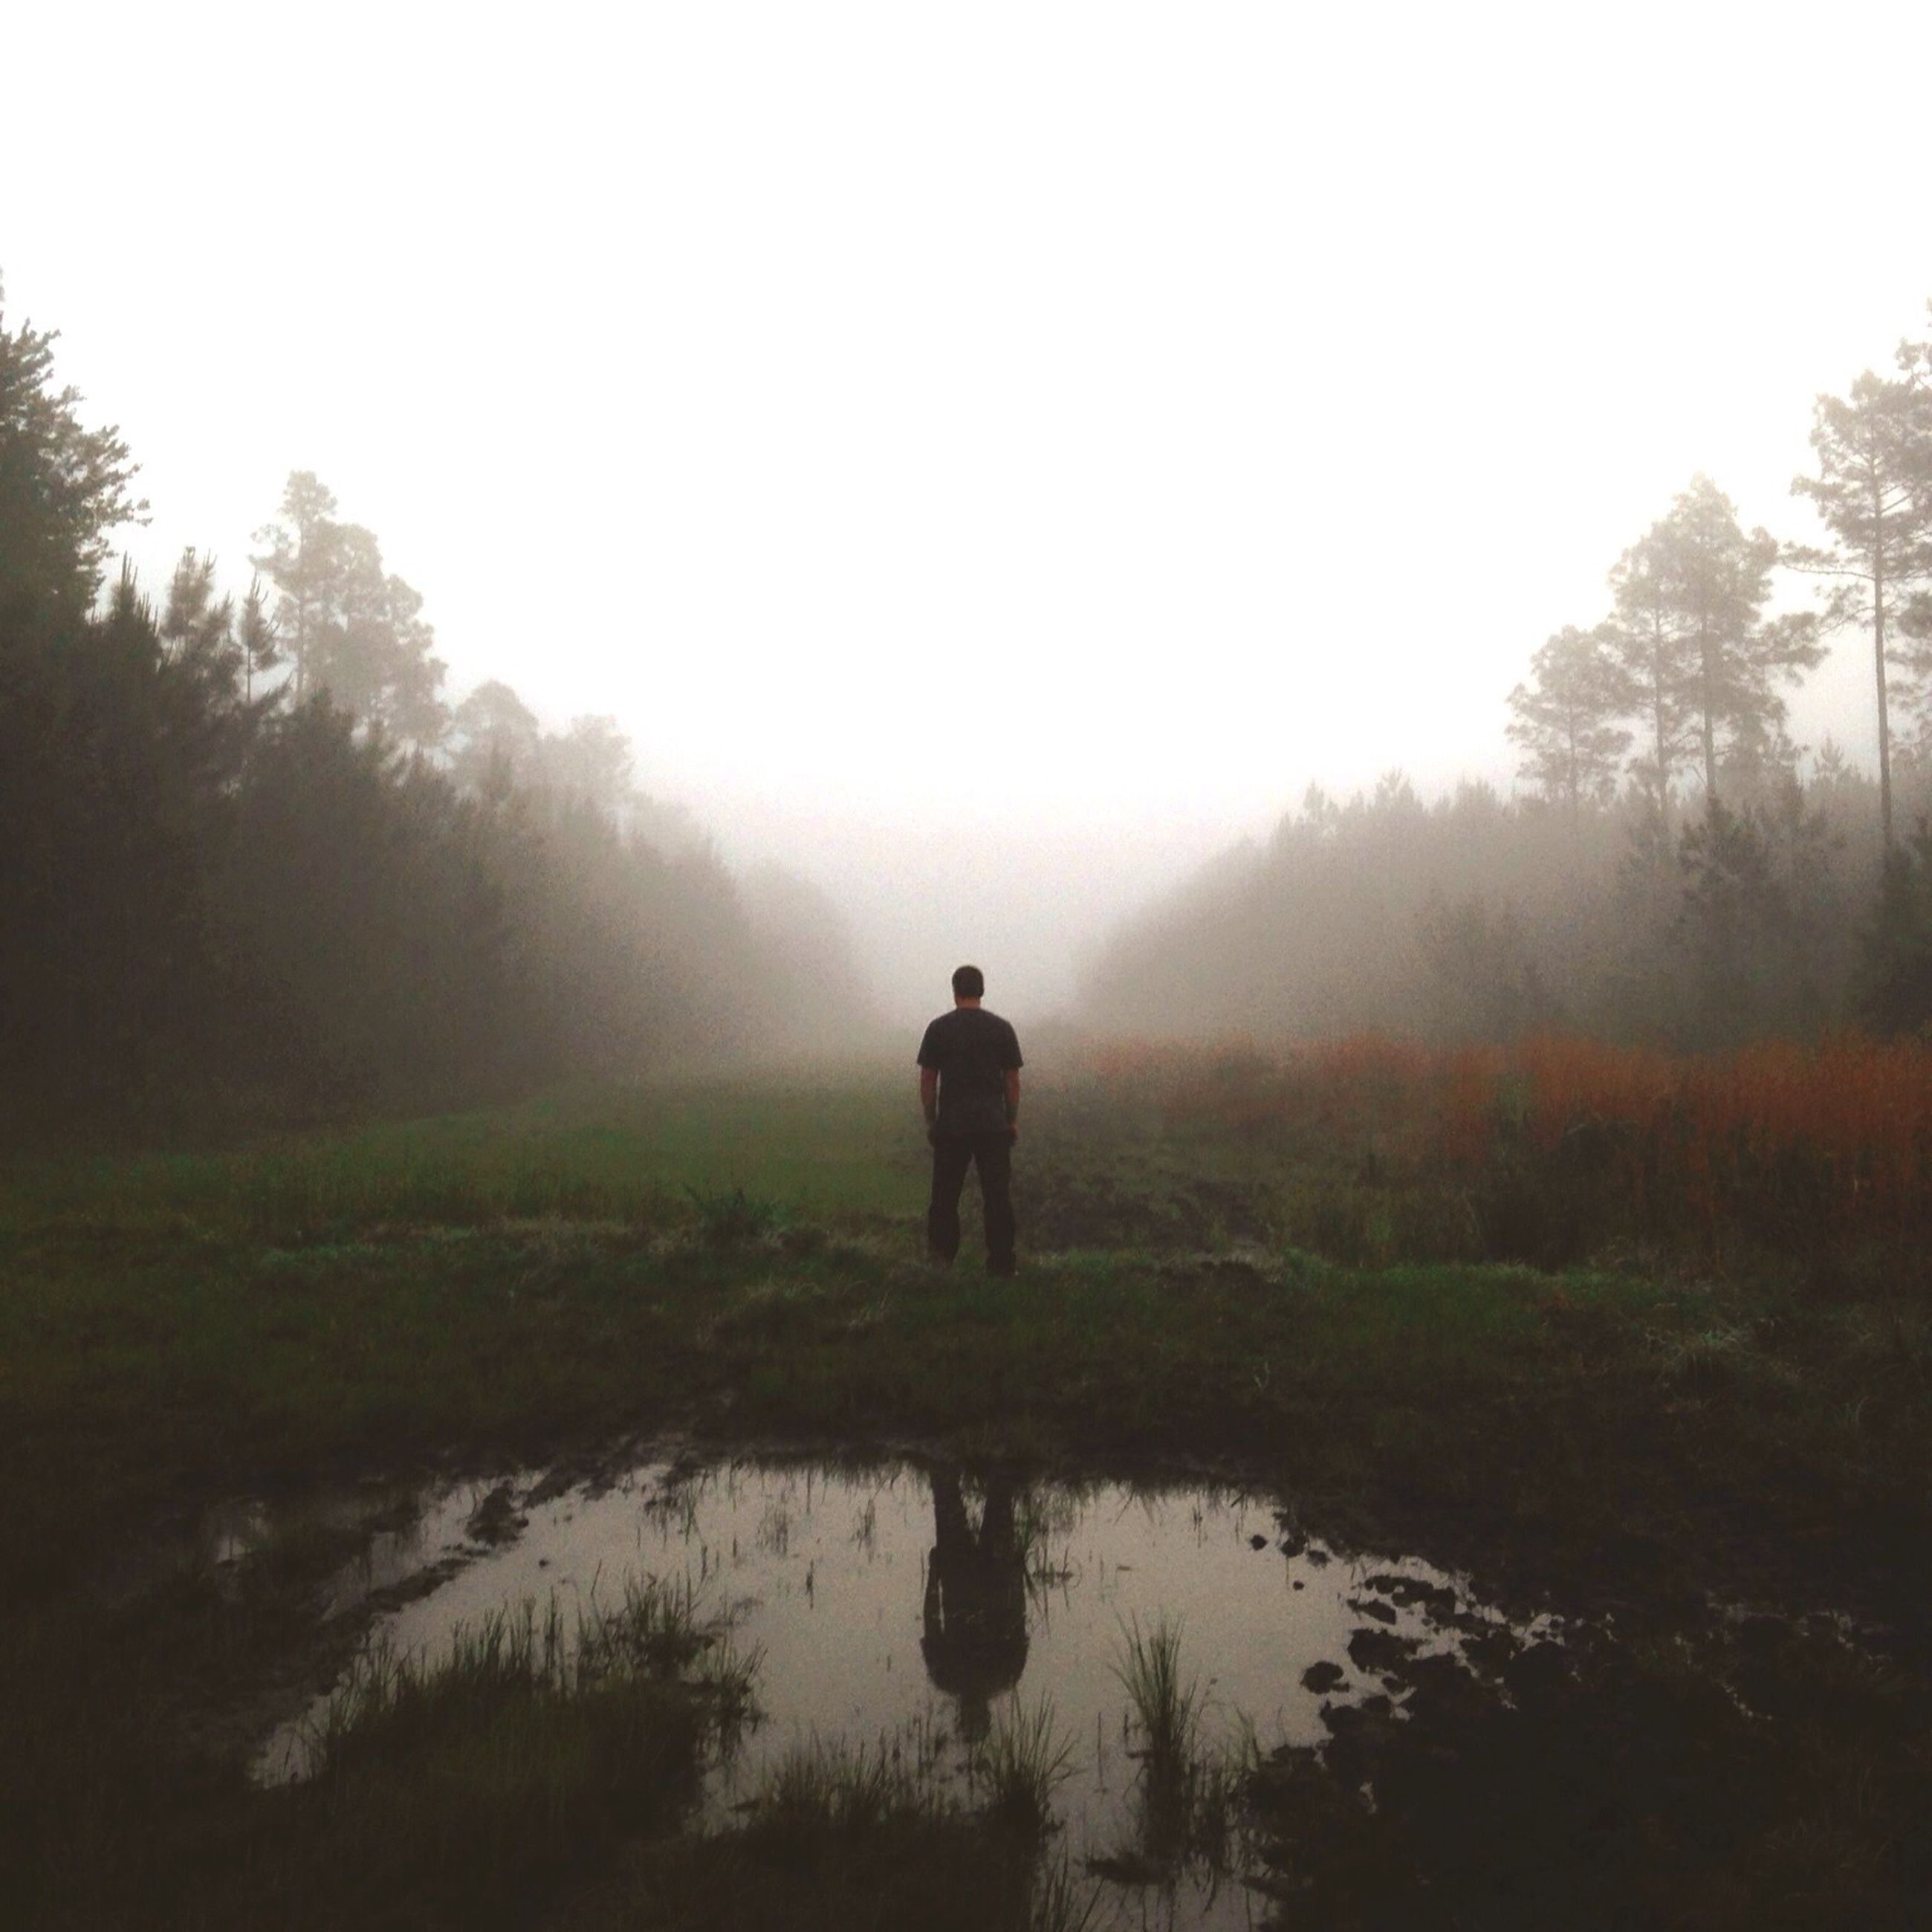 tranquility, tranquil scene, water, fog, tree, reflection, scenics, standing, rear view, beauty in nature, nature, foggy, lake, lifestyles, full length, leisure activity, men